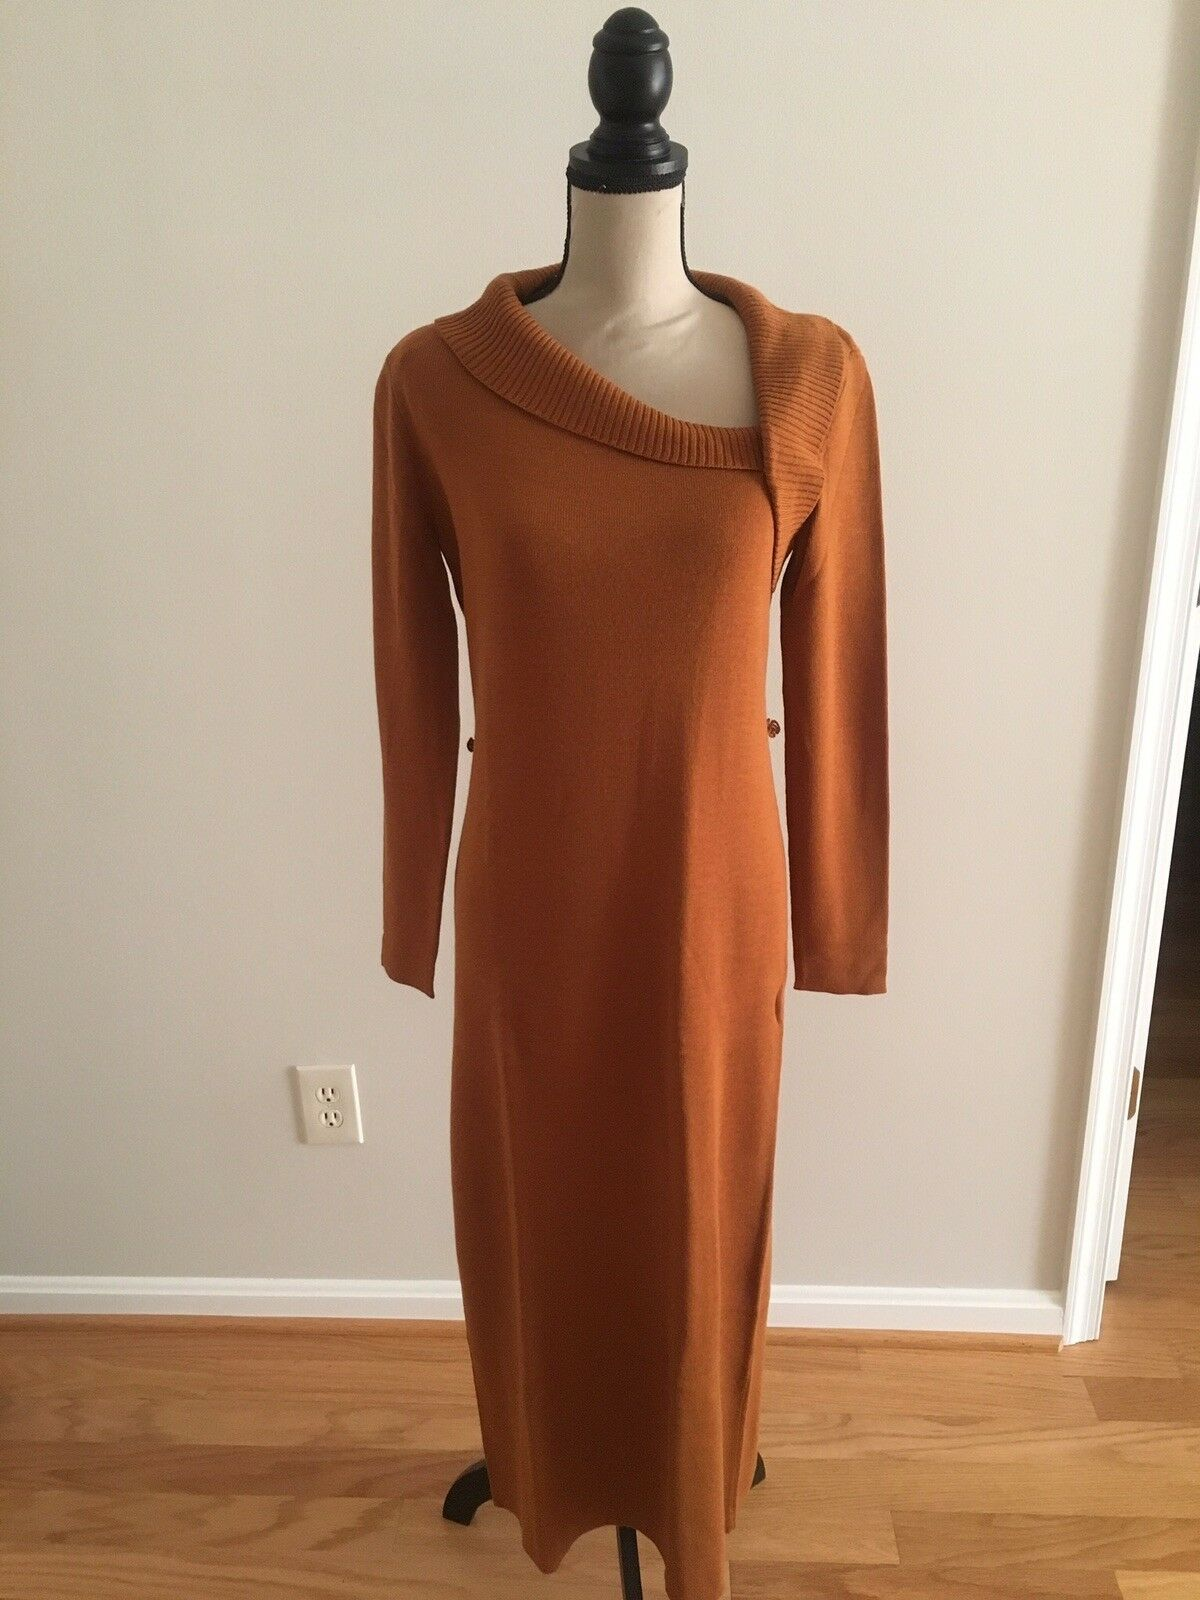 New Without Tags  Adrianna Papell Sweater Dress Size S Caramel   Pumpkin